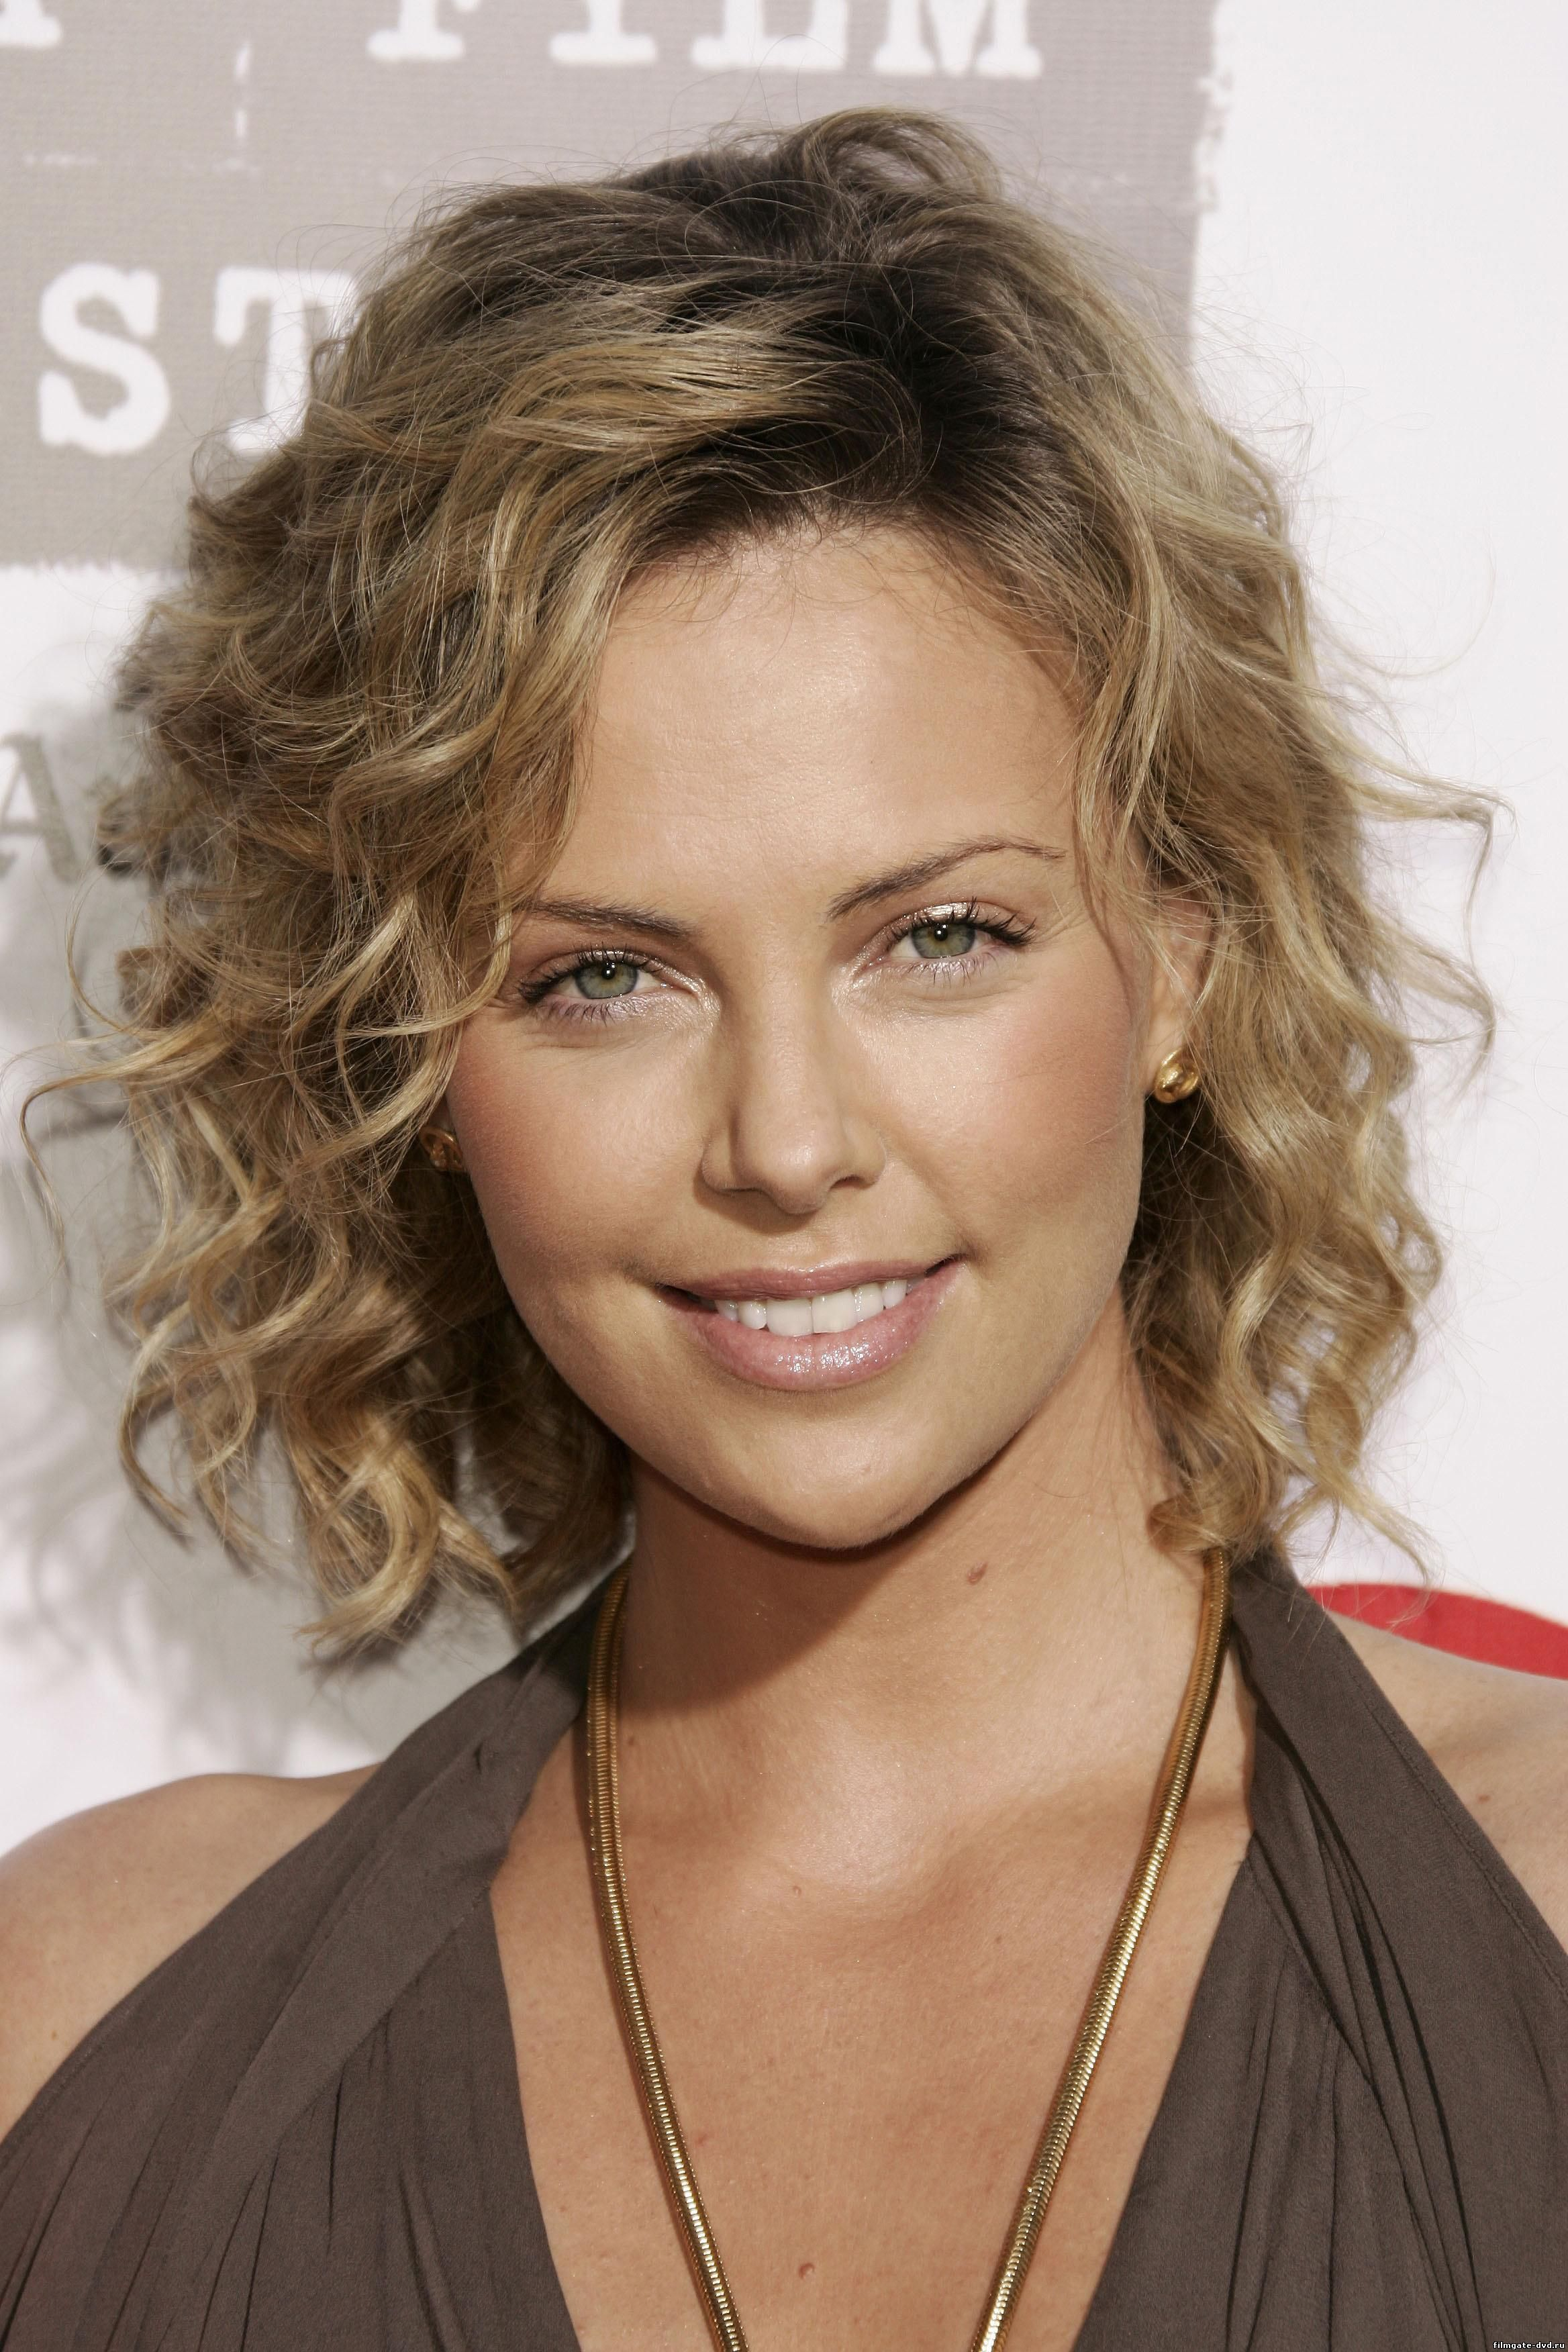 Cute hairstyles for curly hair - 21 Stylish Haircuts For Curly Hair